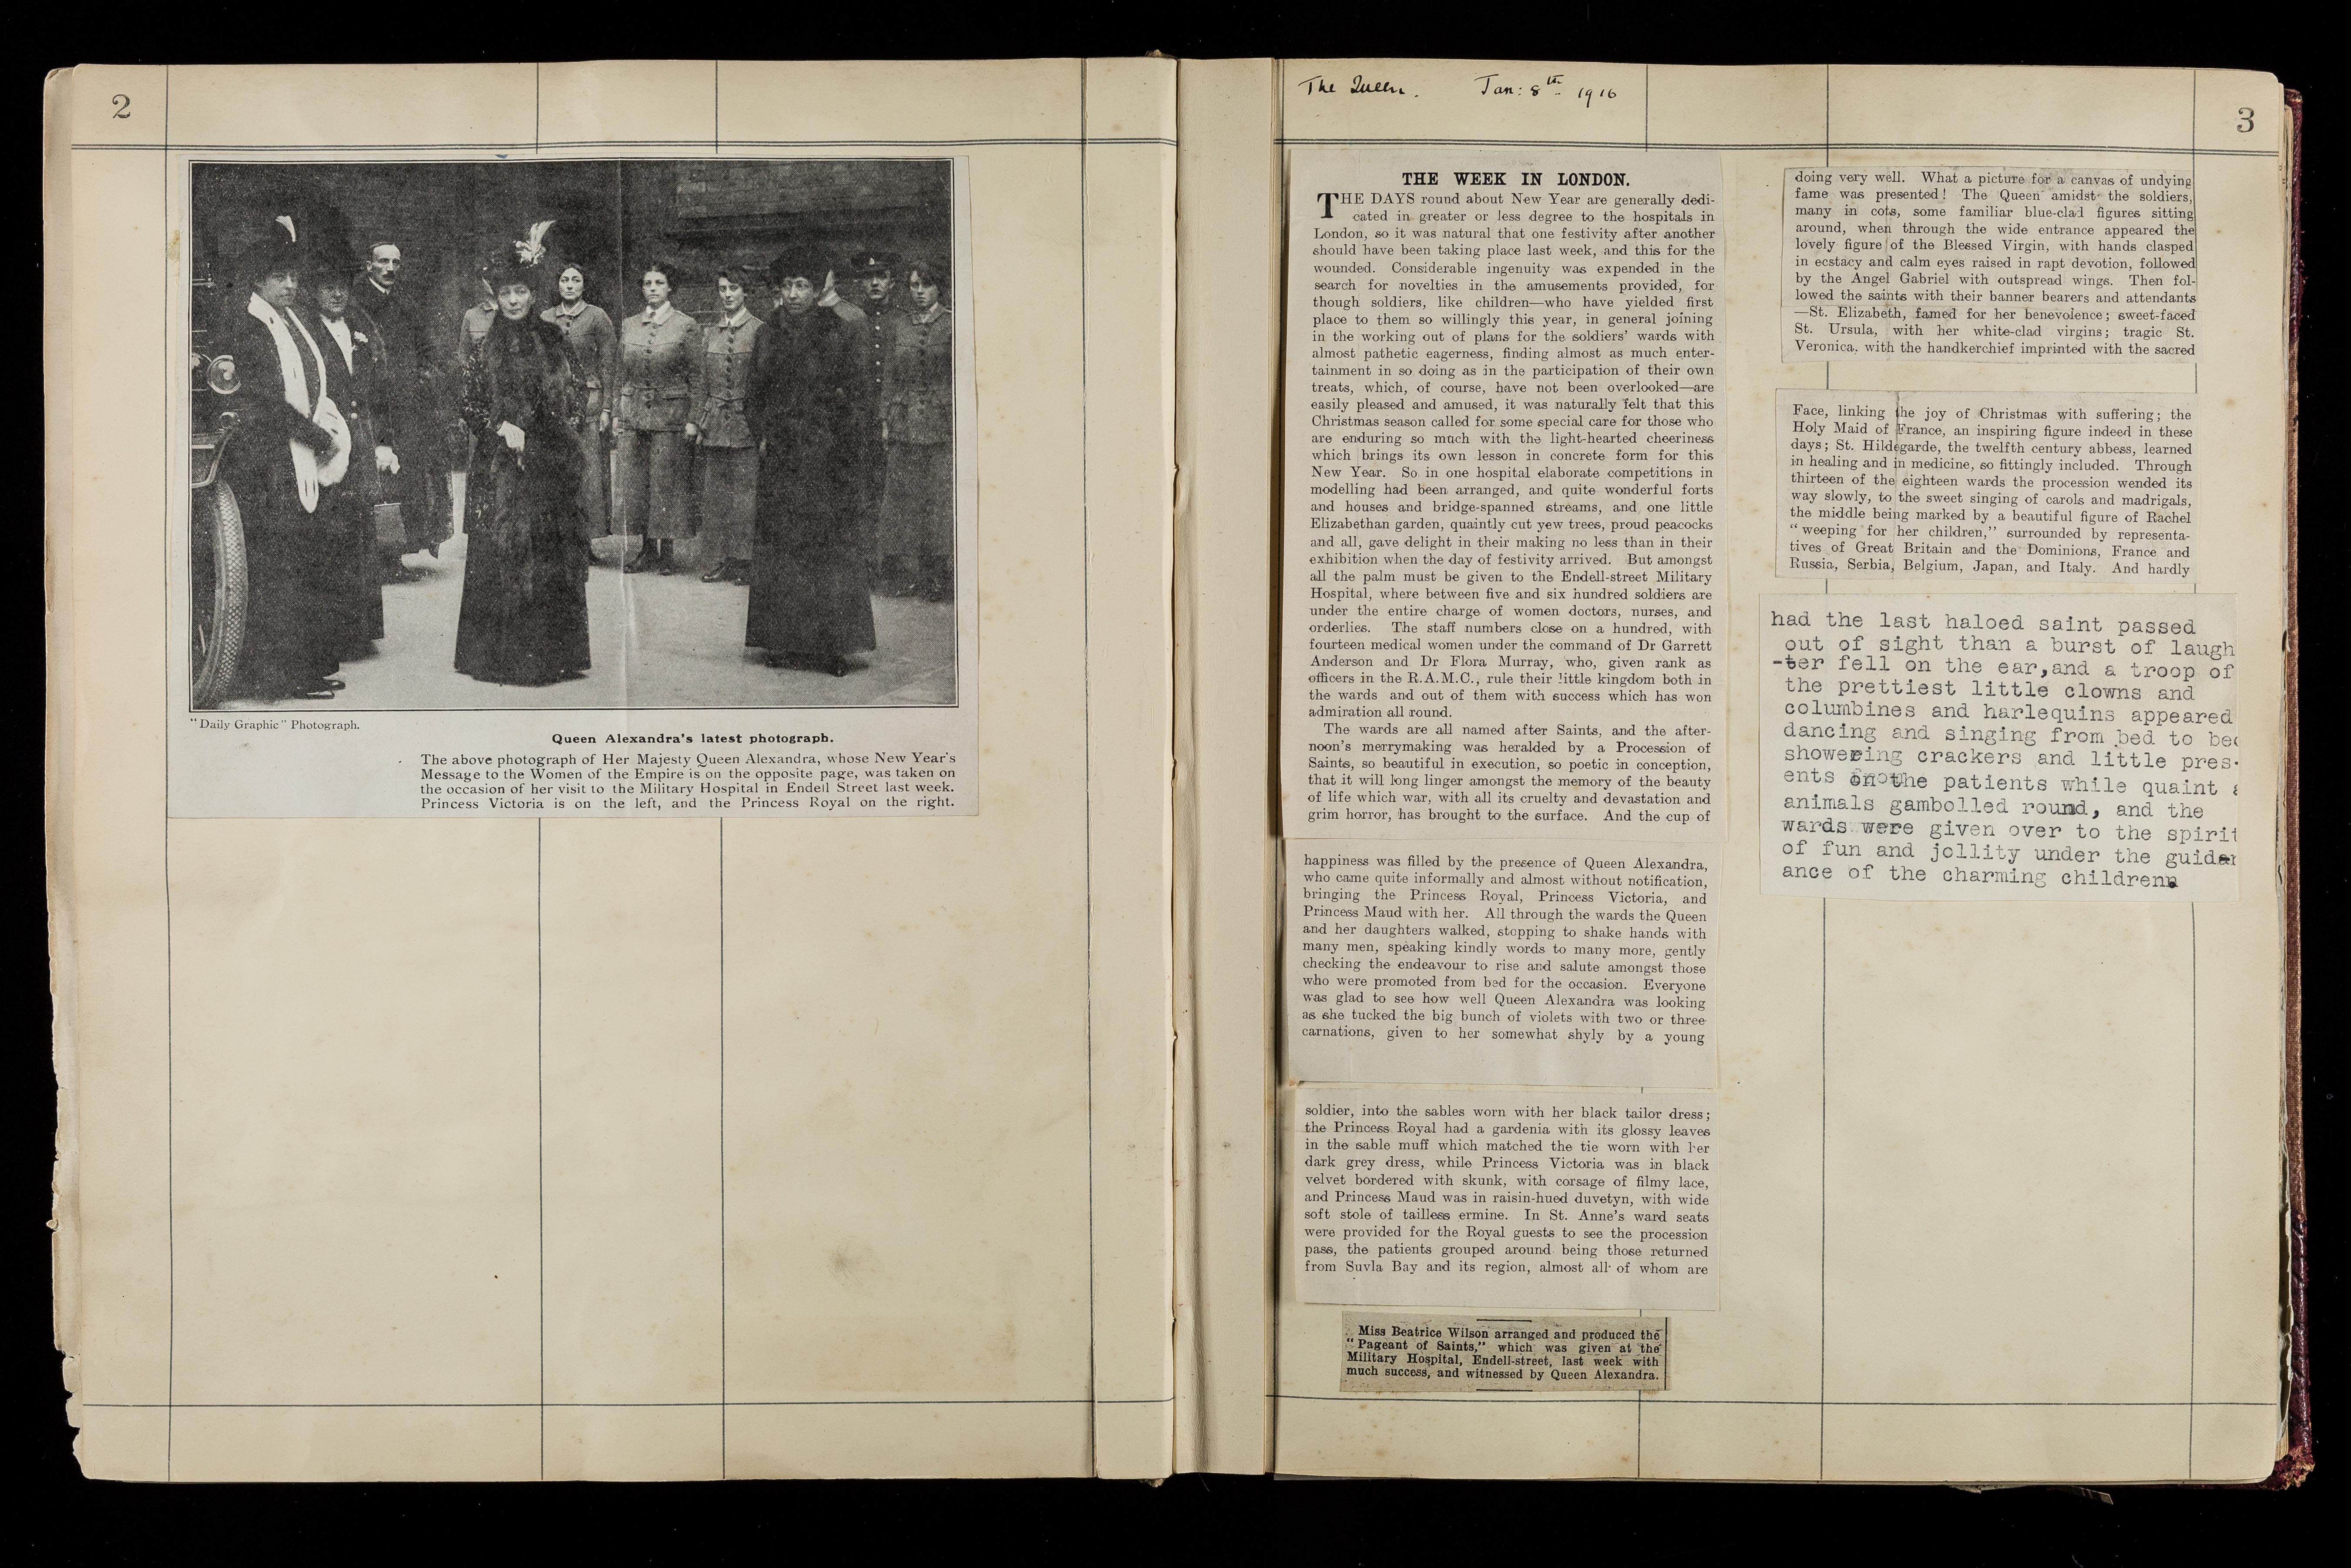 Page from Endell Street Scrapbook showing a newspaper clipping of the visit of Queen Alexandra and her daughter to the hospital in 1916